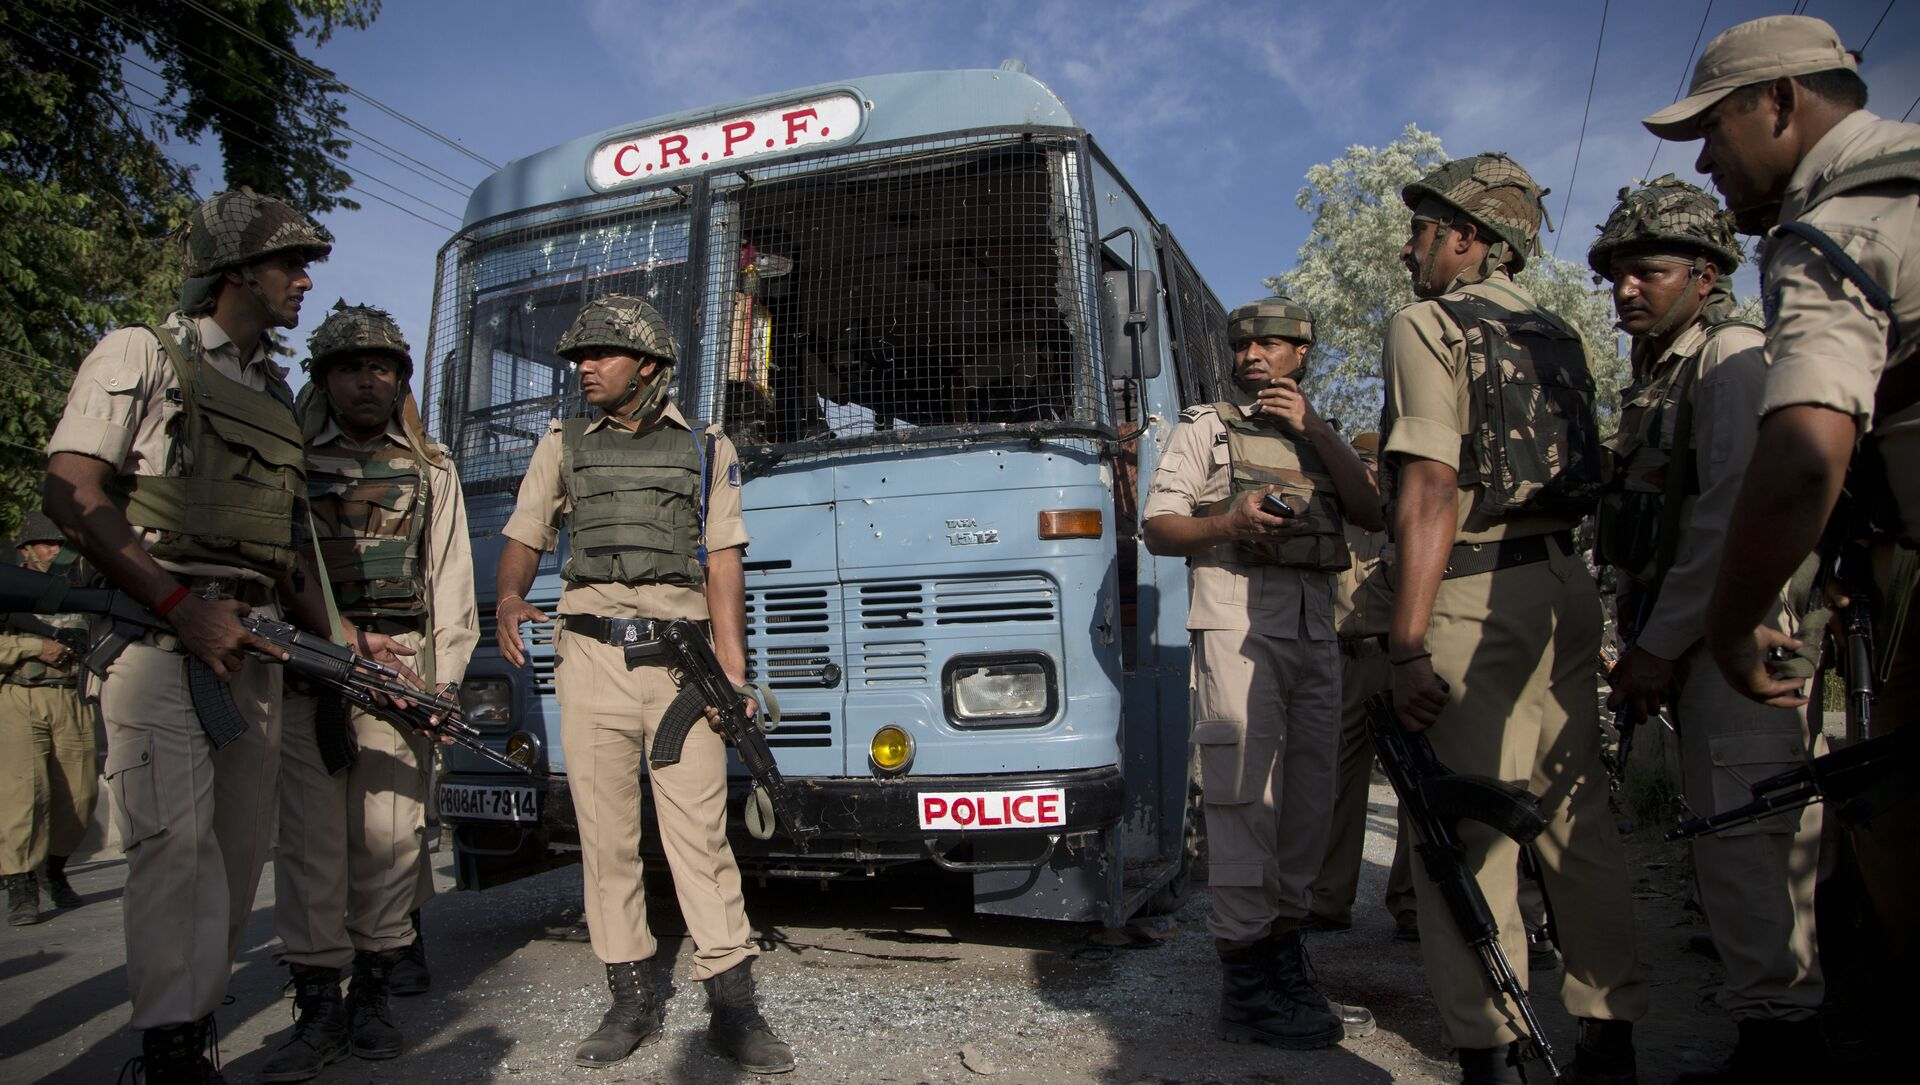 Indian security personnel stand guard near the bus that was carrying paramilitary soldiers damaged after a highway ambush by suspected rebels in Pampore, on the outskirts of Srinagar, Indian controlled Kashmir, Saturday, June 25, 2016 - Sputnik International, 1920, 03.08.2021